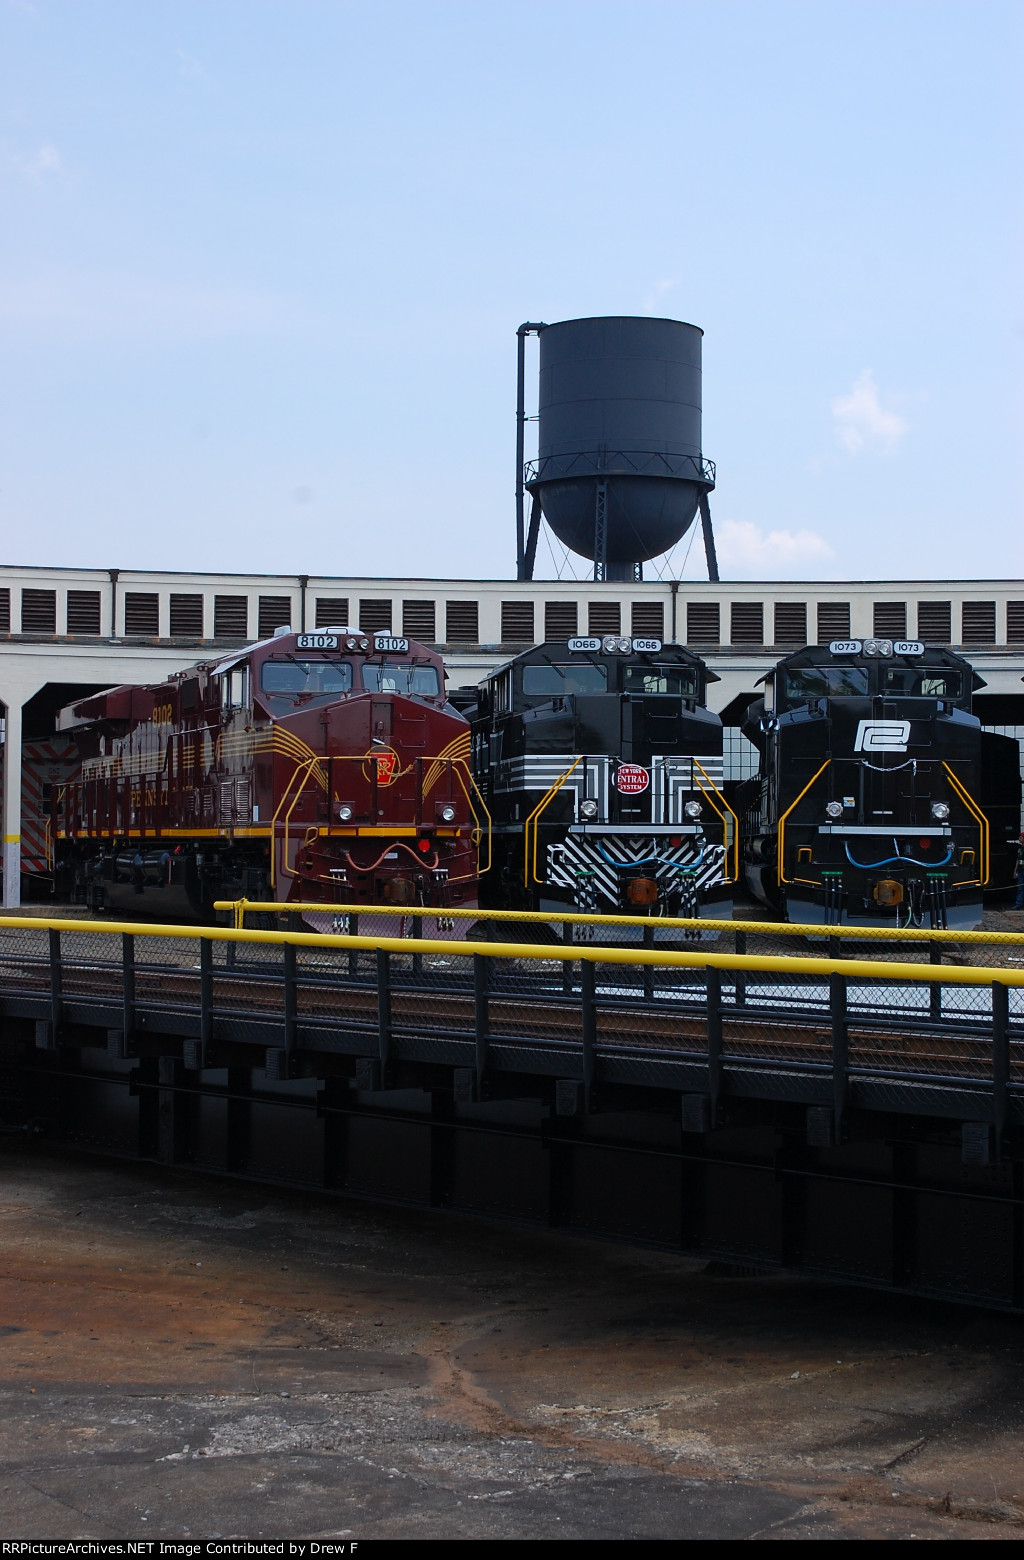 PRR, NYC, and PC